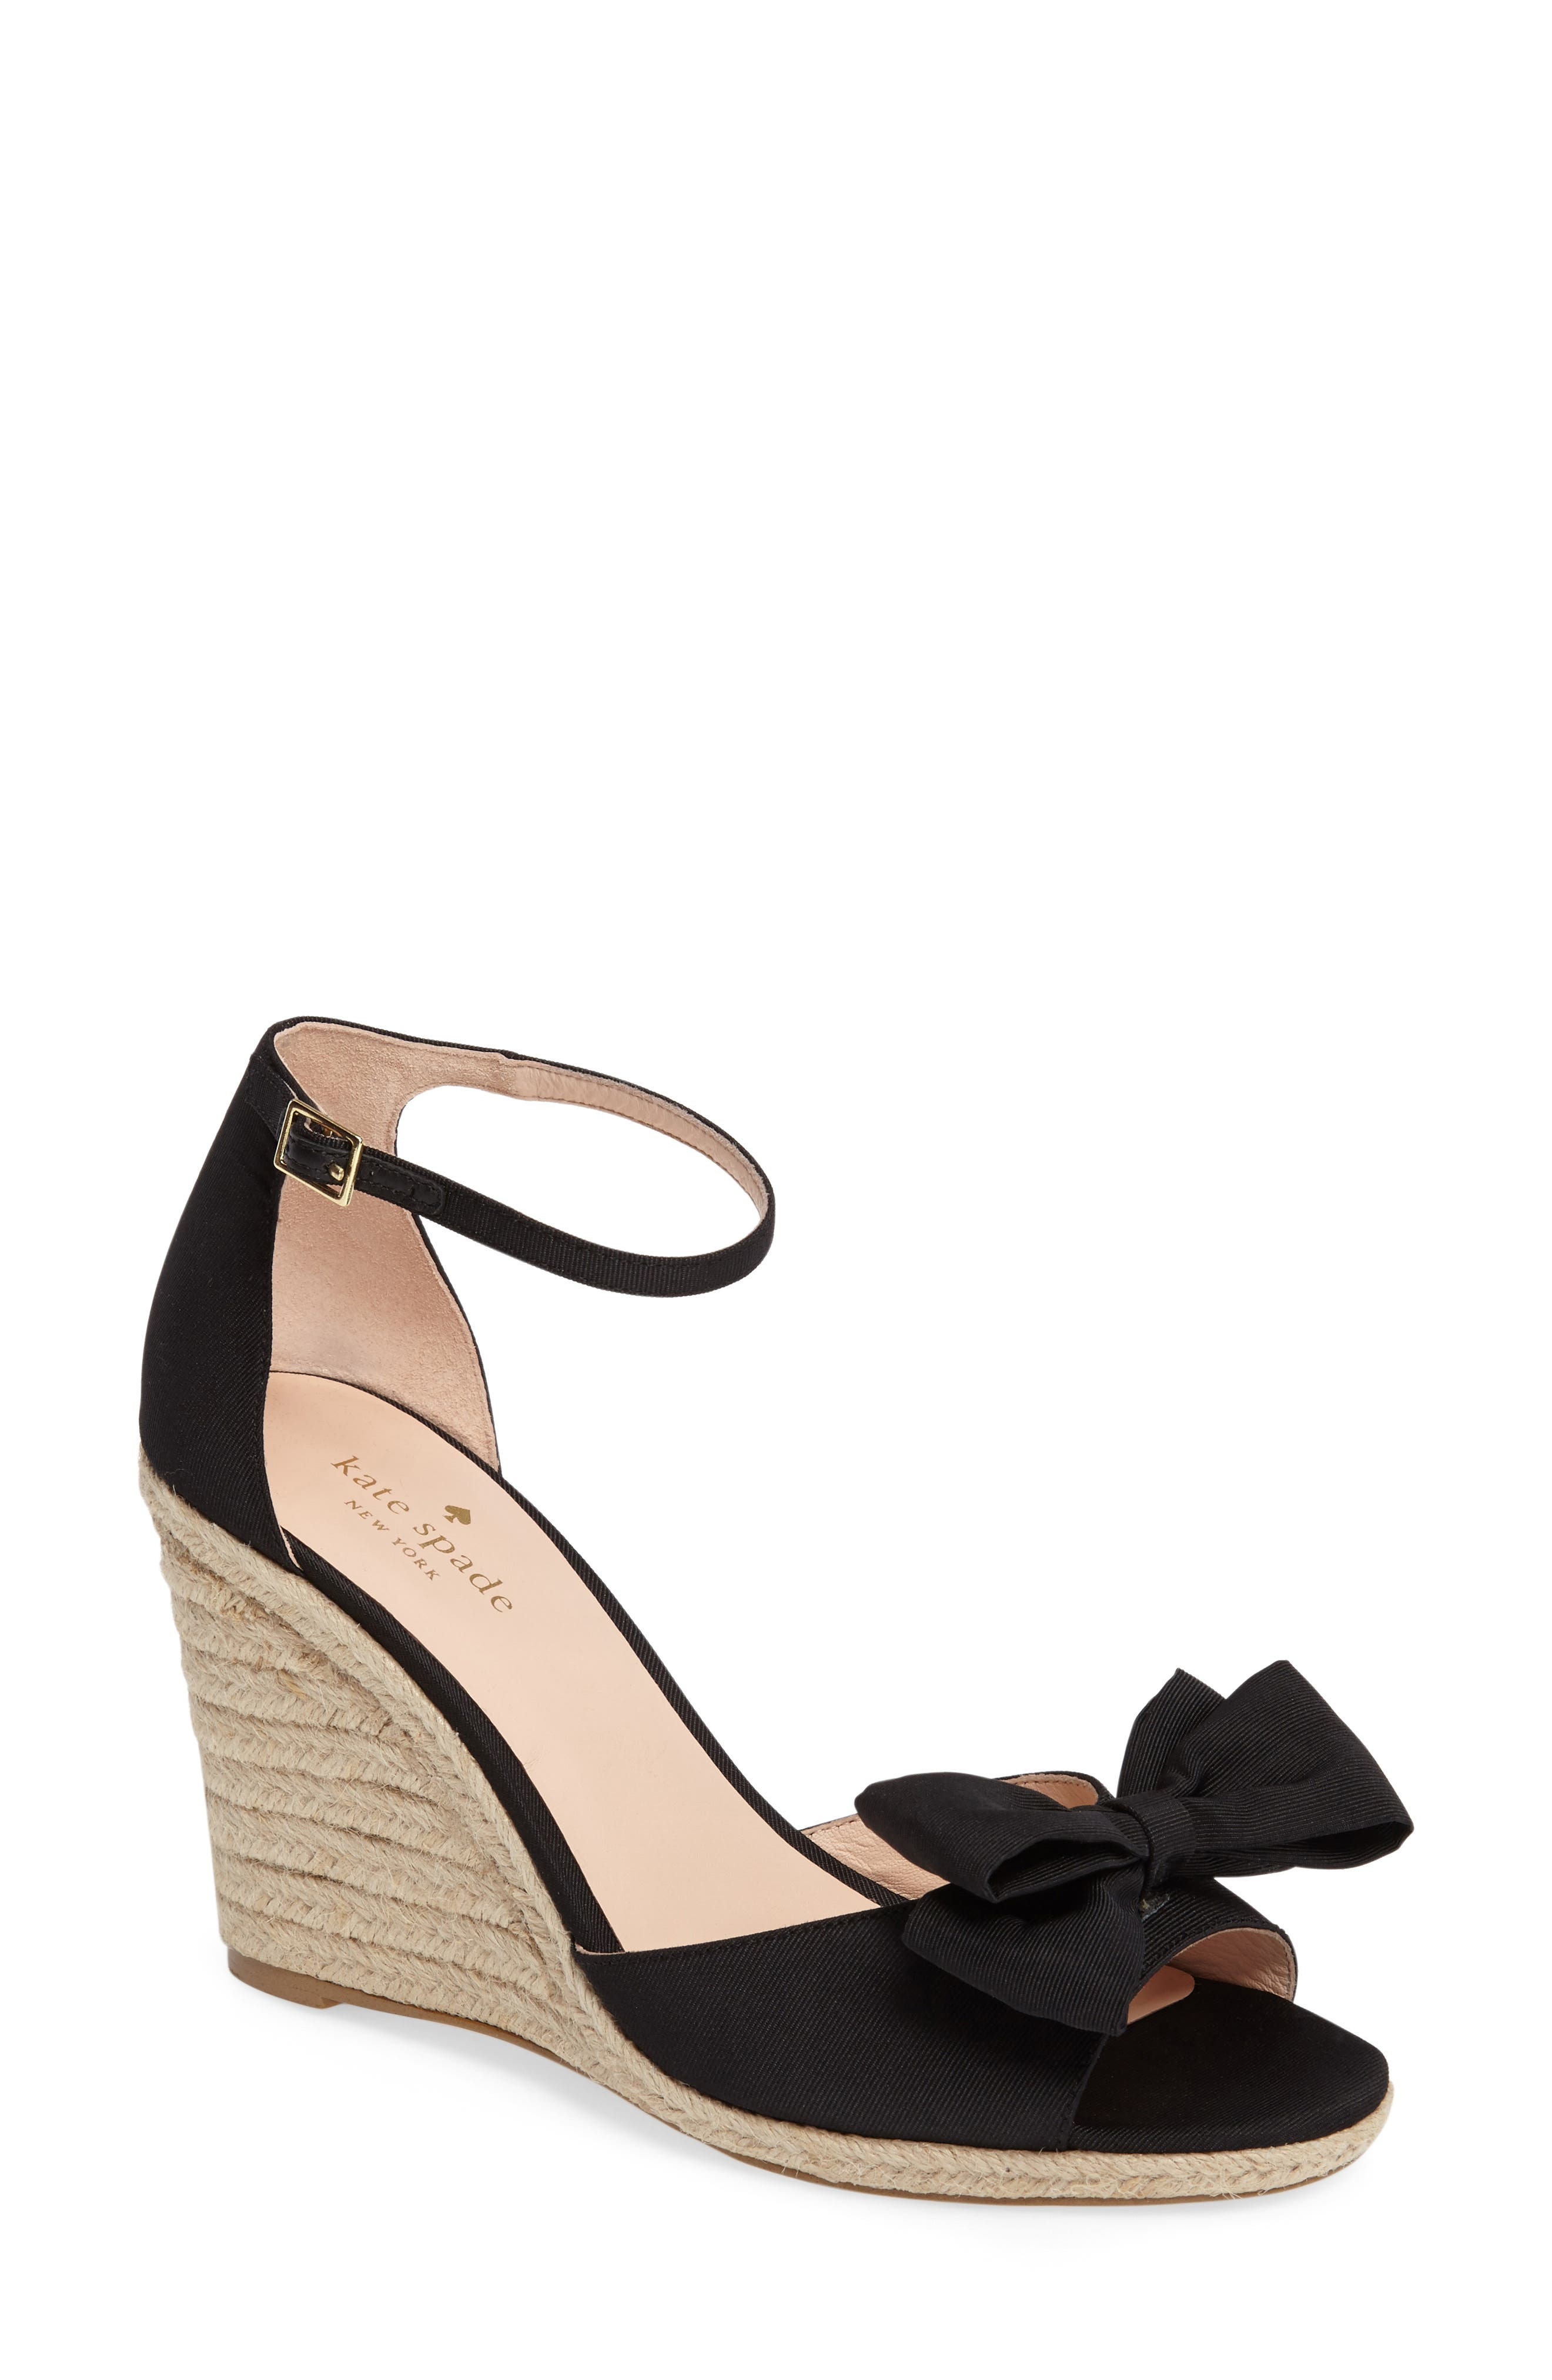 Main Image - kate spade new york broome wedge sandal (Women)